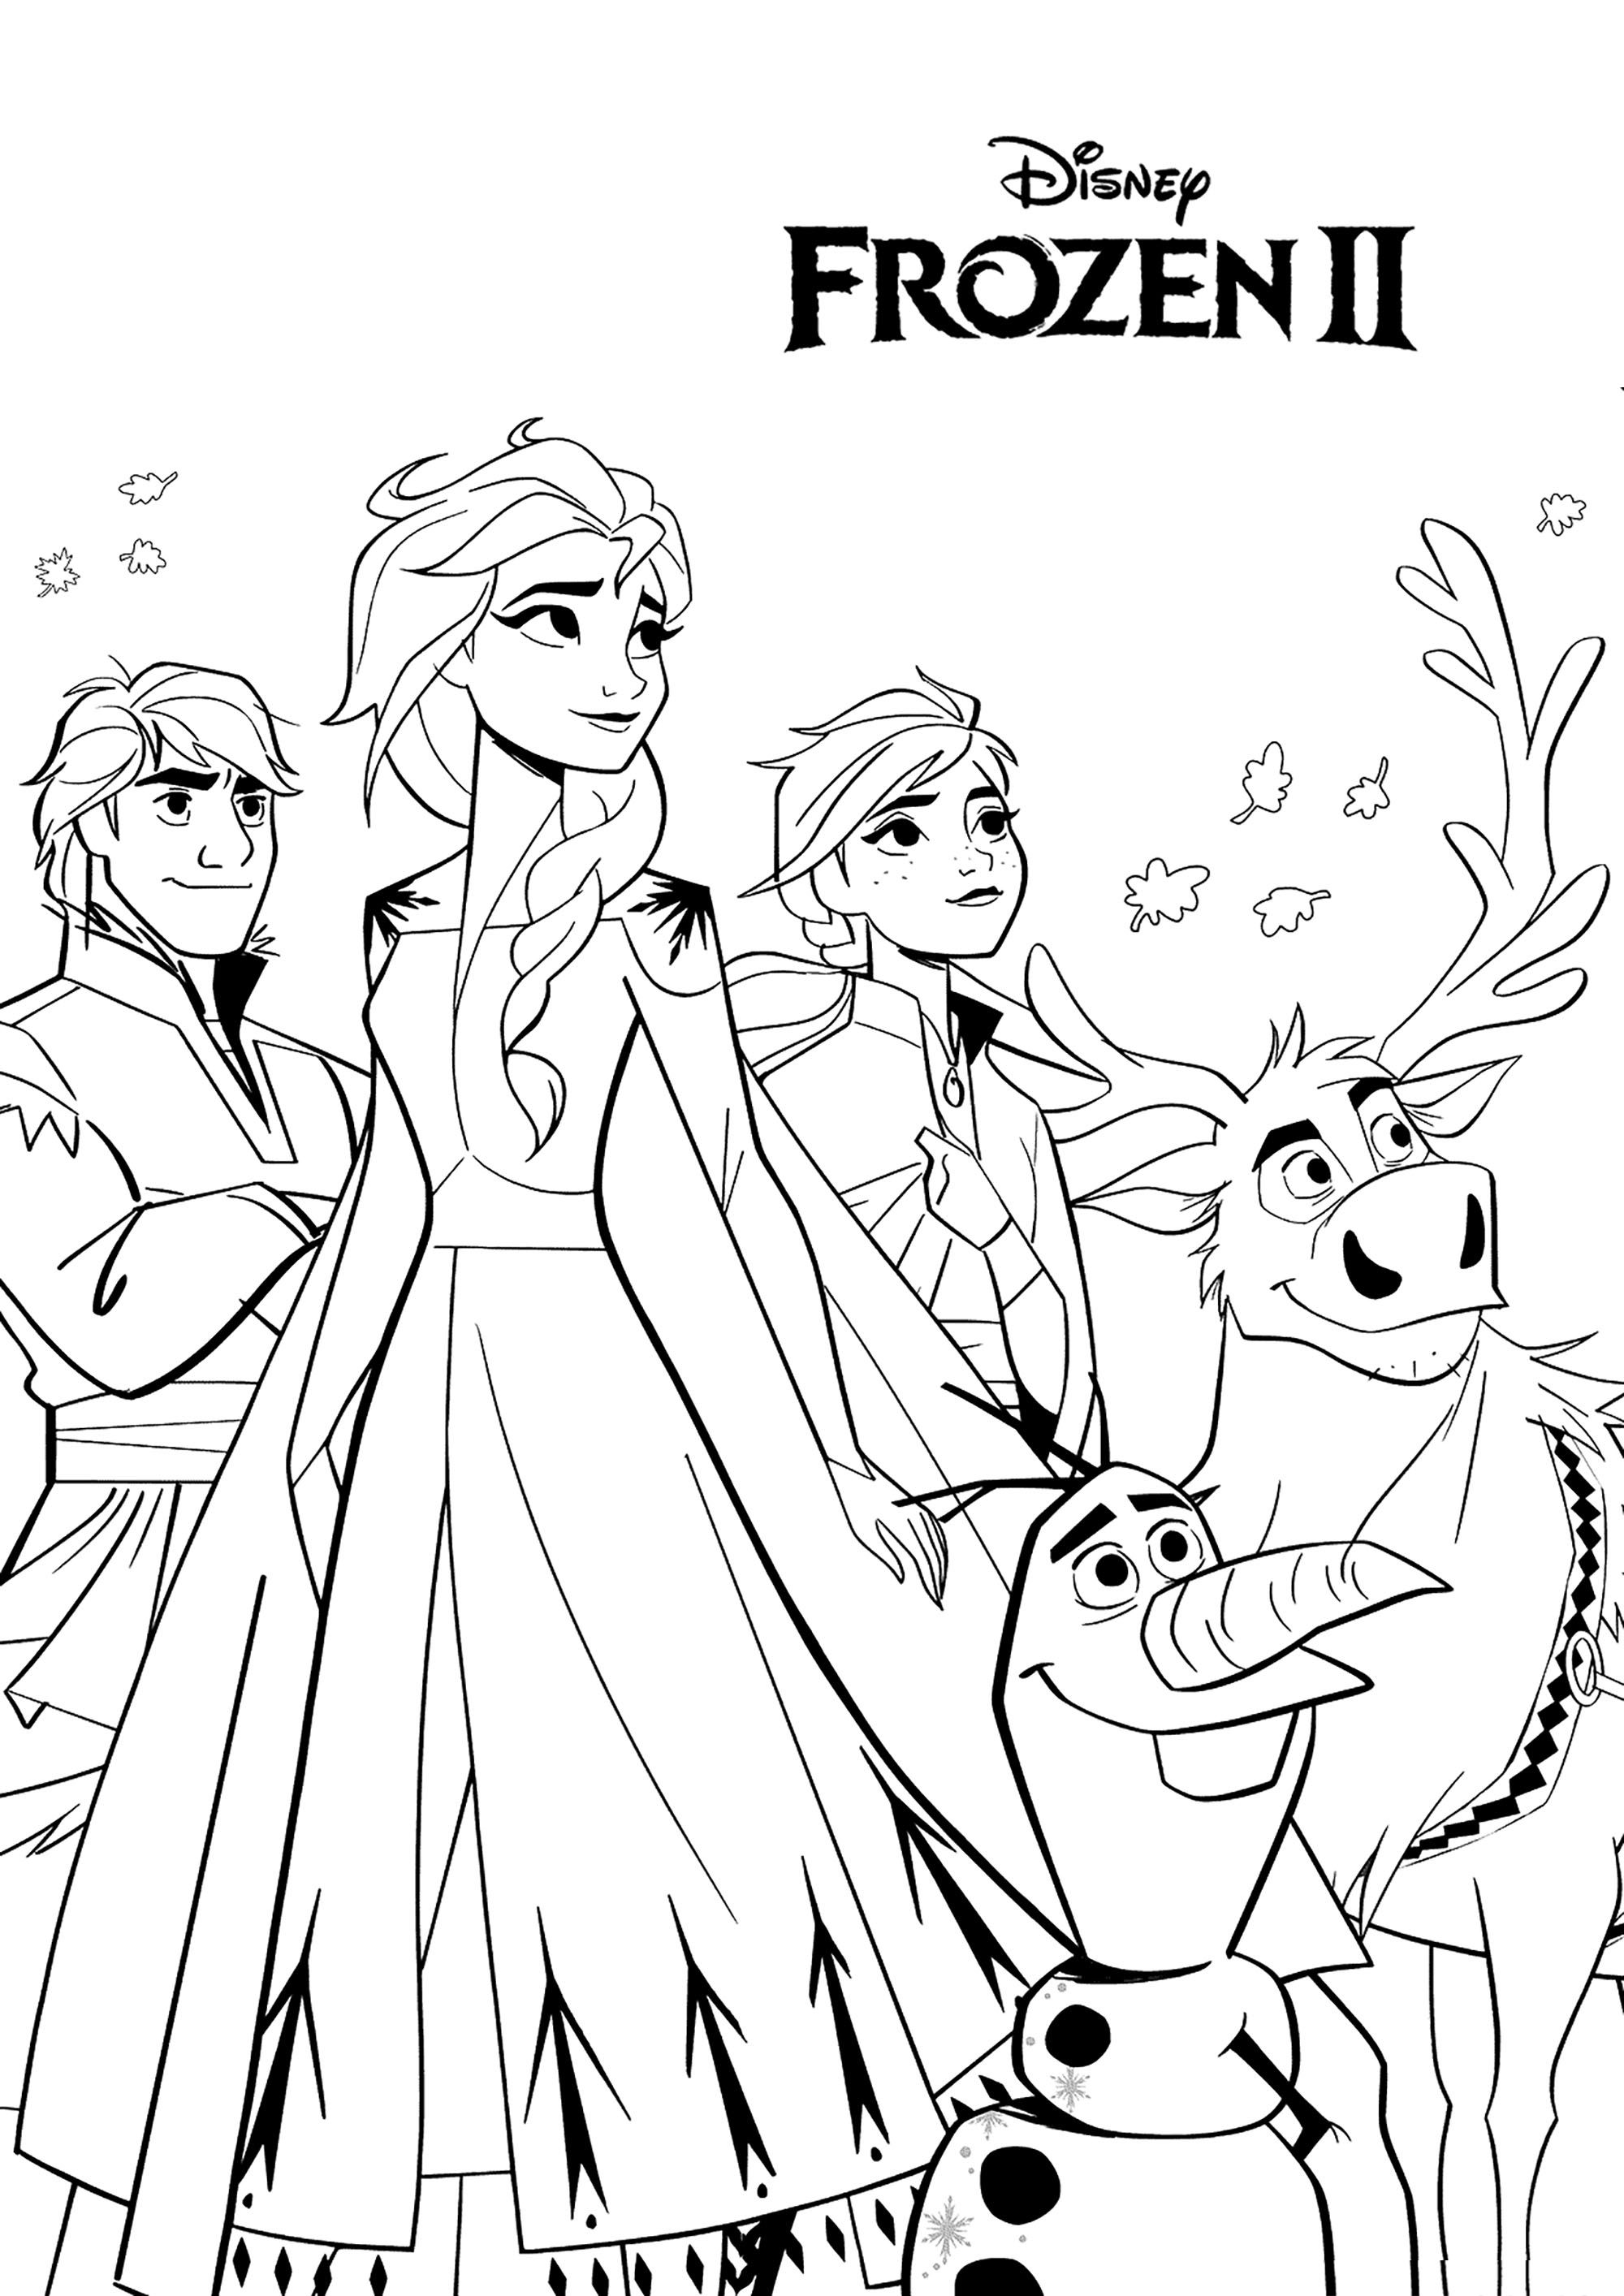 Frozen 2 To Print Incredible Frozen 2 Coloring Page To Print And Color For Free From The Gal In 2020 Elsa Coloring Pages Detailed Coloring Pages Cute Coloring Pages